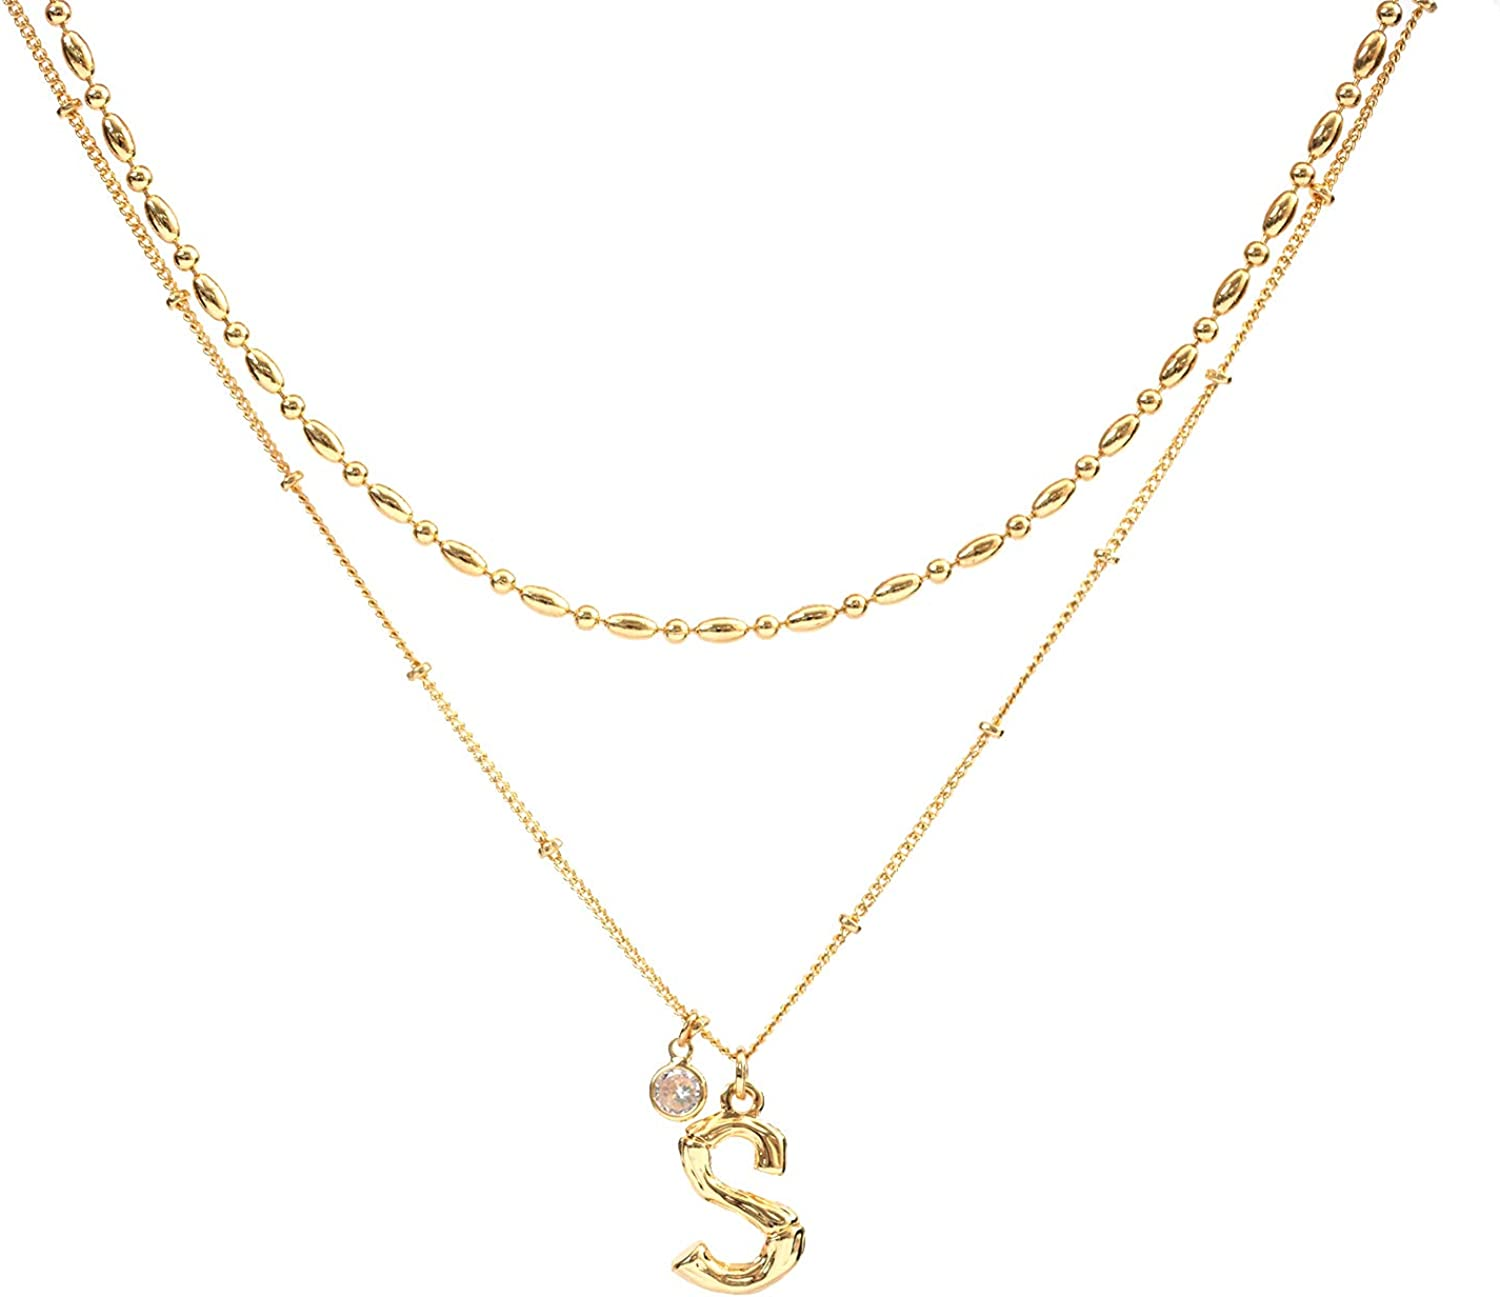 PESMES Layered Gold Chain Initial Letter Necklaces 14K Gold Beaded Chain Choker Set, Bamboo Letter with Cubic Zirconia Necklaces for Women